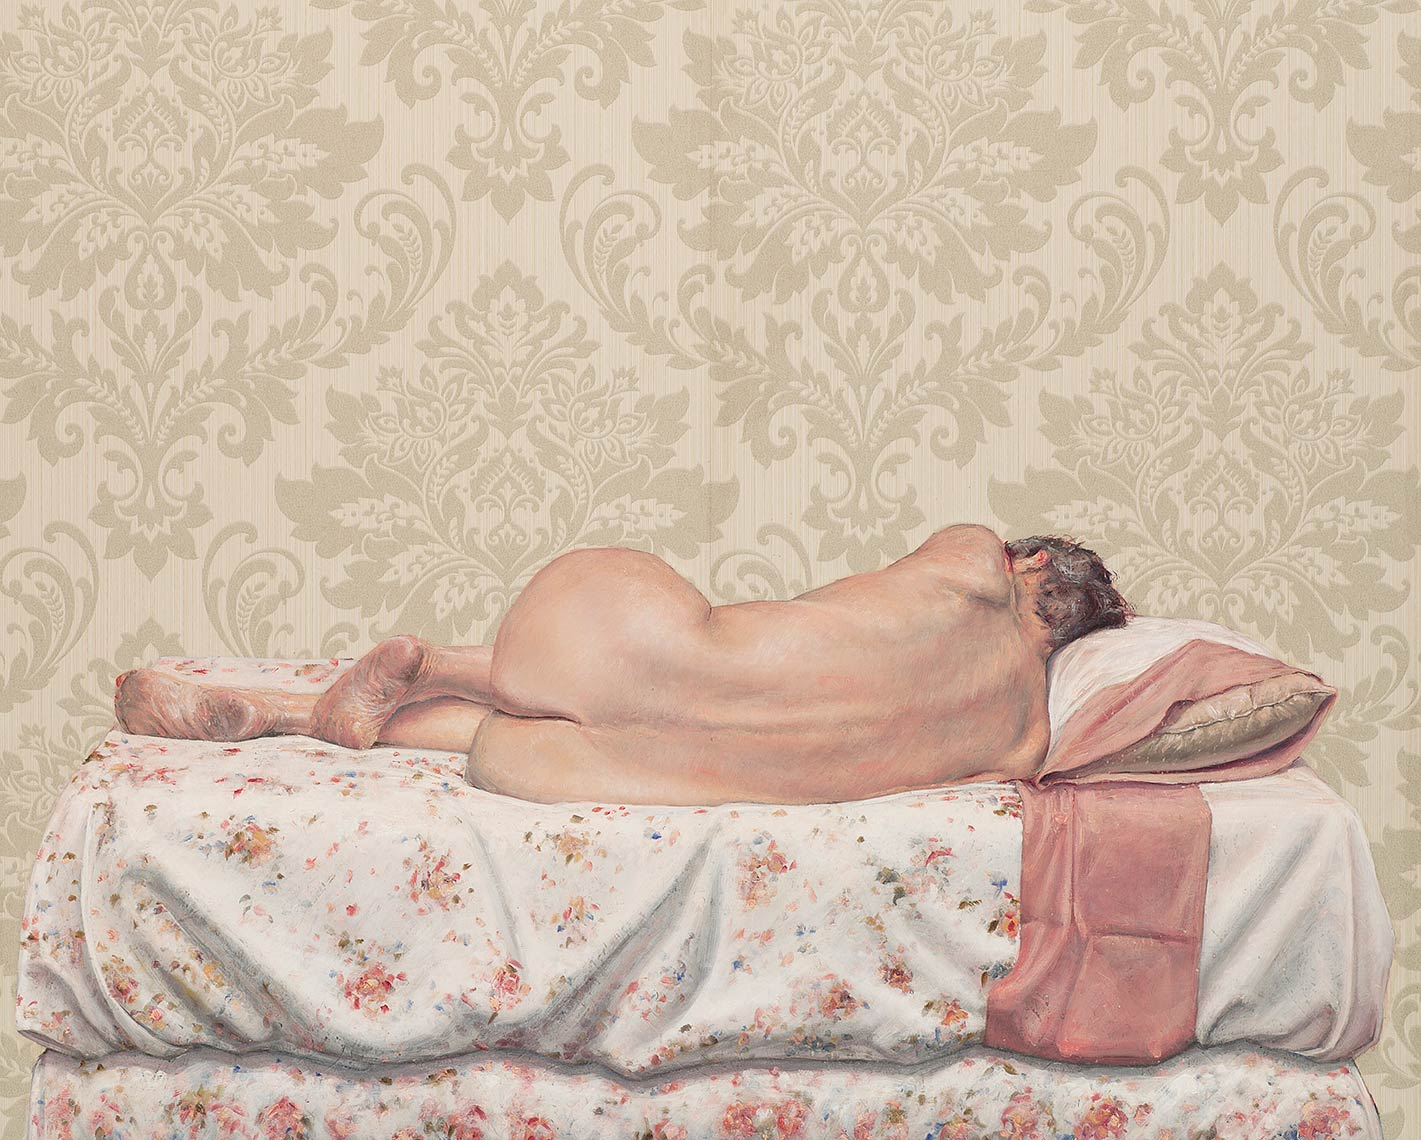 Sleepwatcher-After-it-End-II_2012_oil-on-wallpaper_84x105_33x42_Available